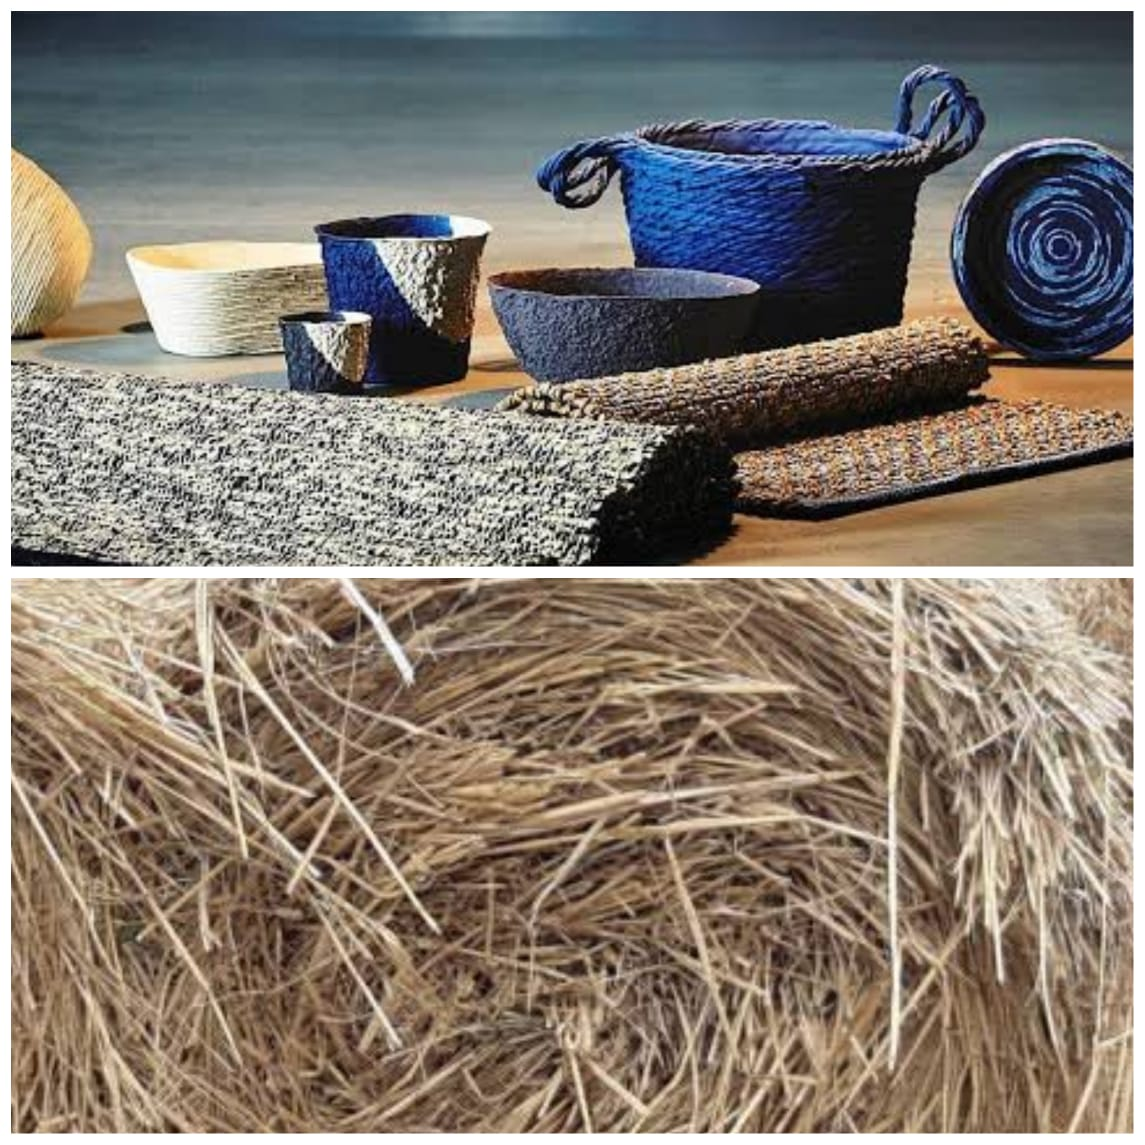 IKEA launches new collection made from rice straw